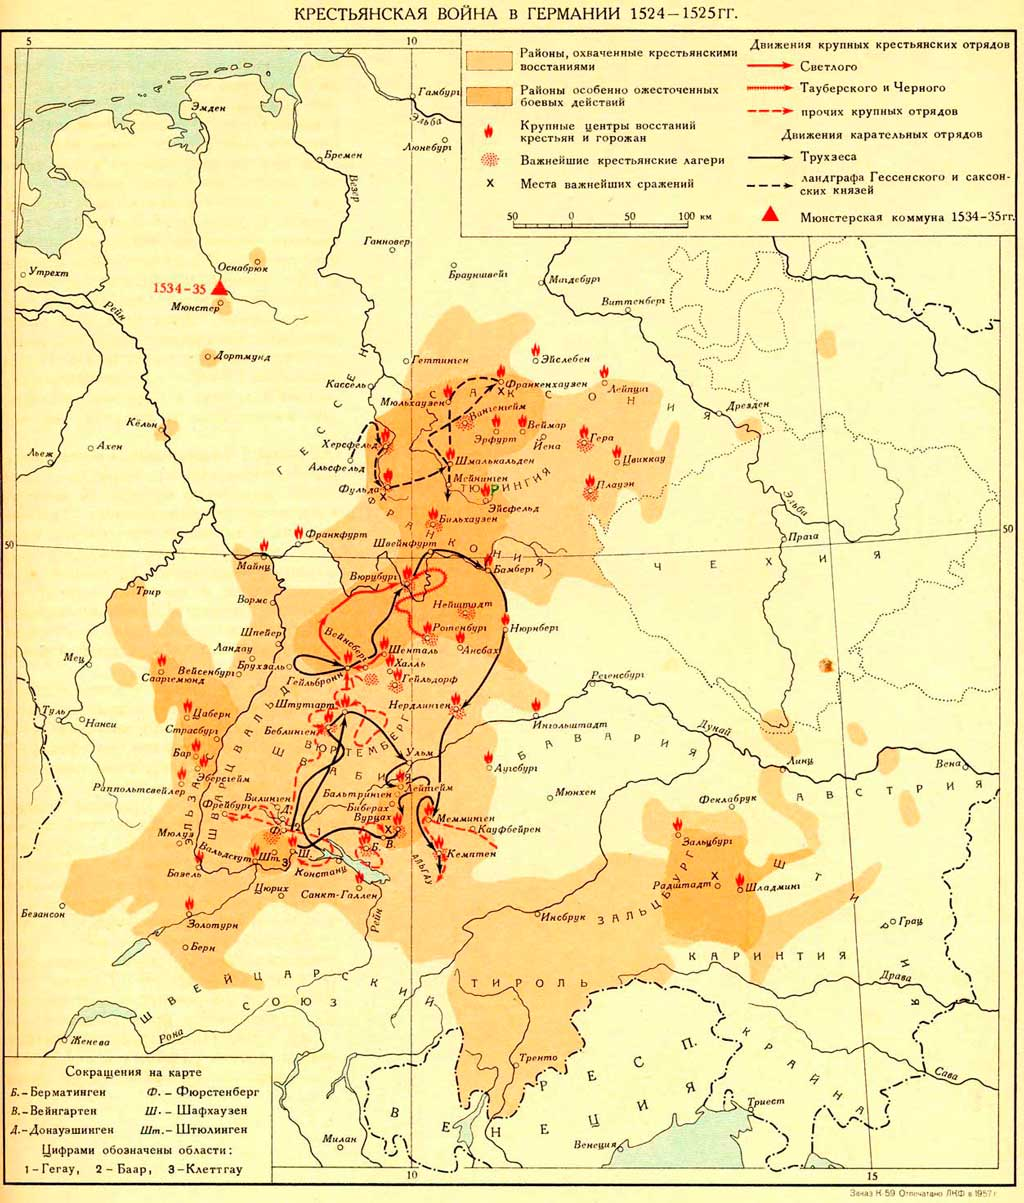 map-peasant-war-1524-25.jpg